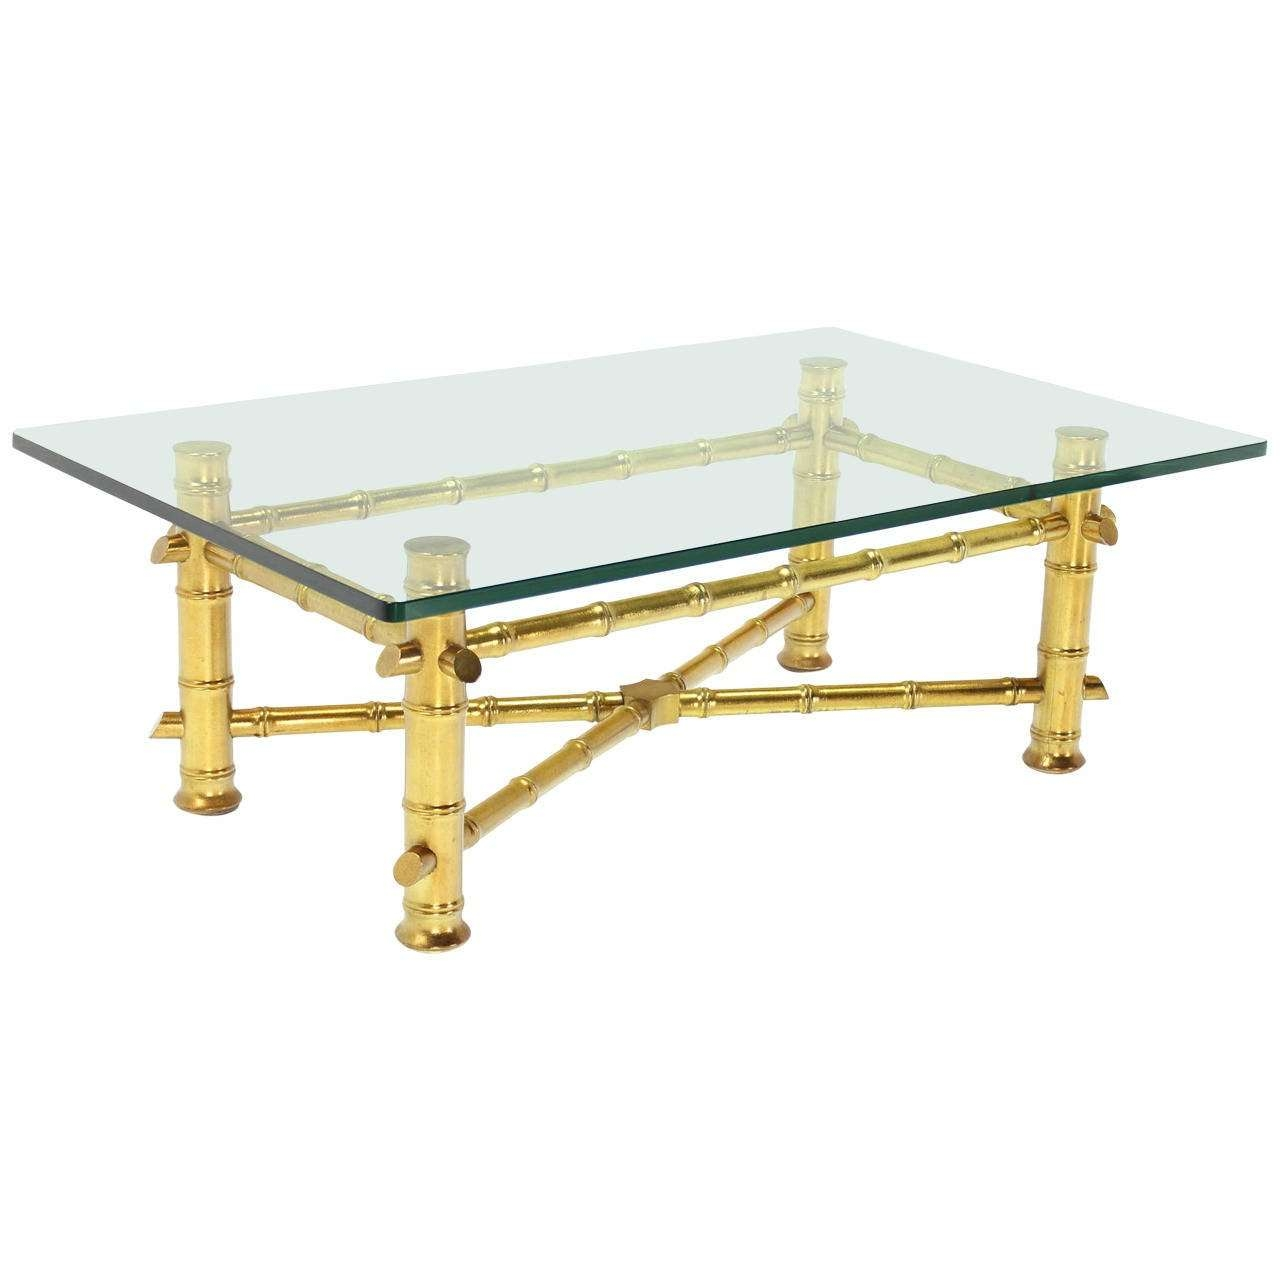 Gold Leaf Faux Bamboo Base Coffee Table With Thick Glass Top For With Most Current Thick Glass Coffee Table (Gallery 10 of 20)